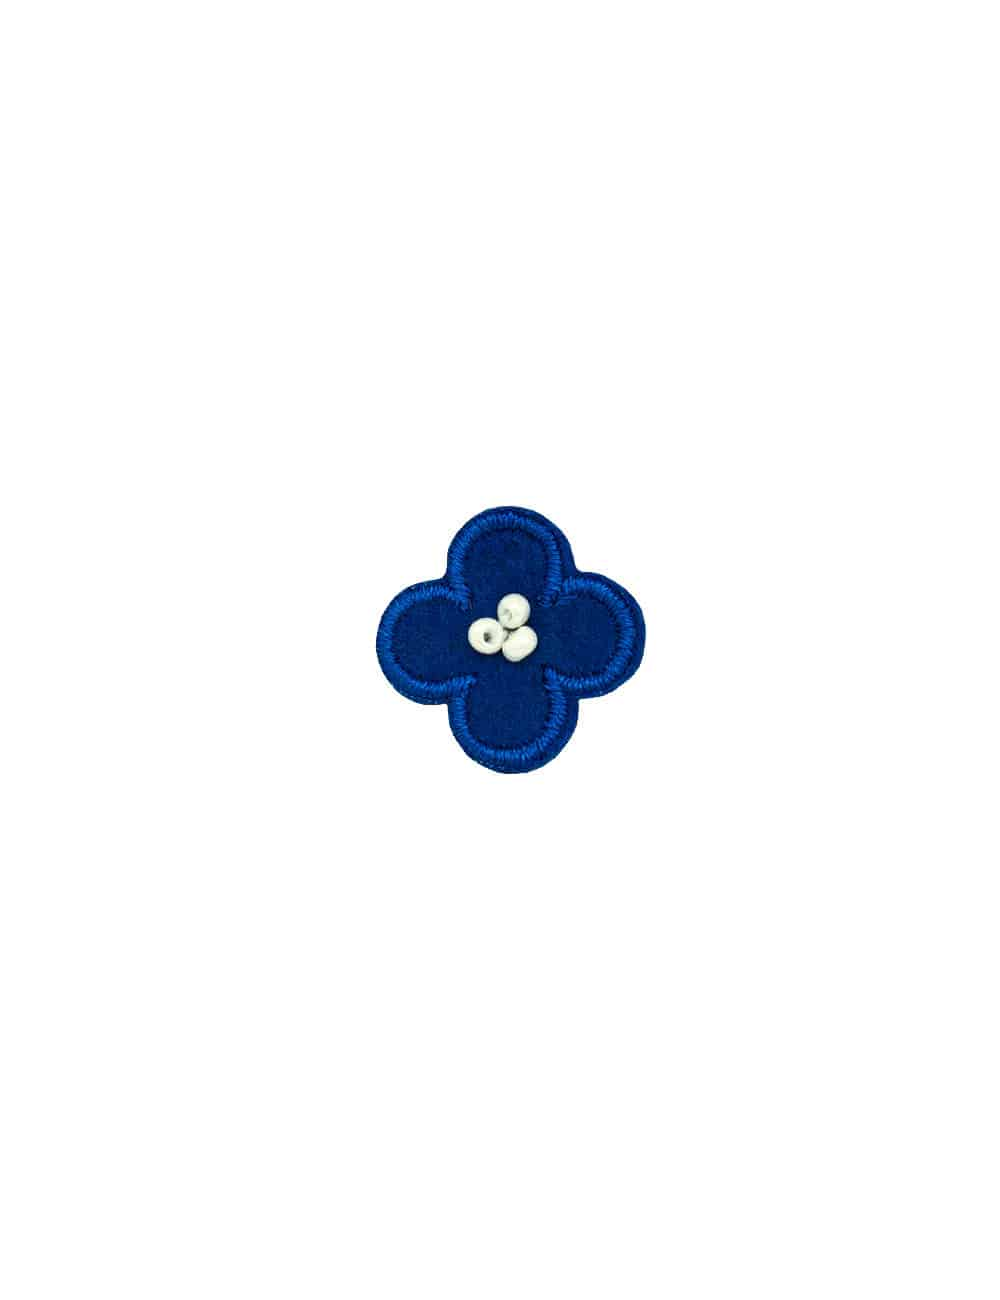 Blue with White Floral Lapel Pin LP7.10